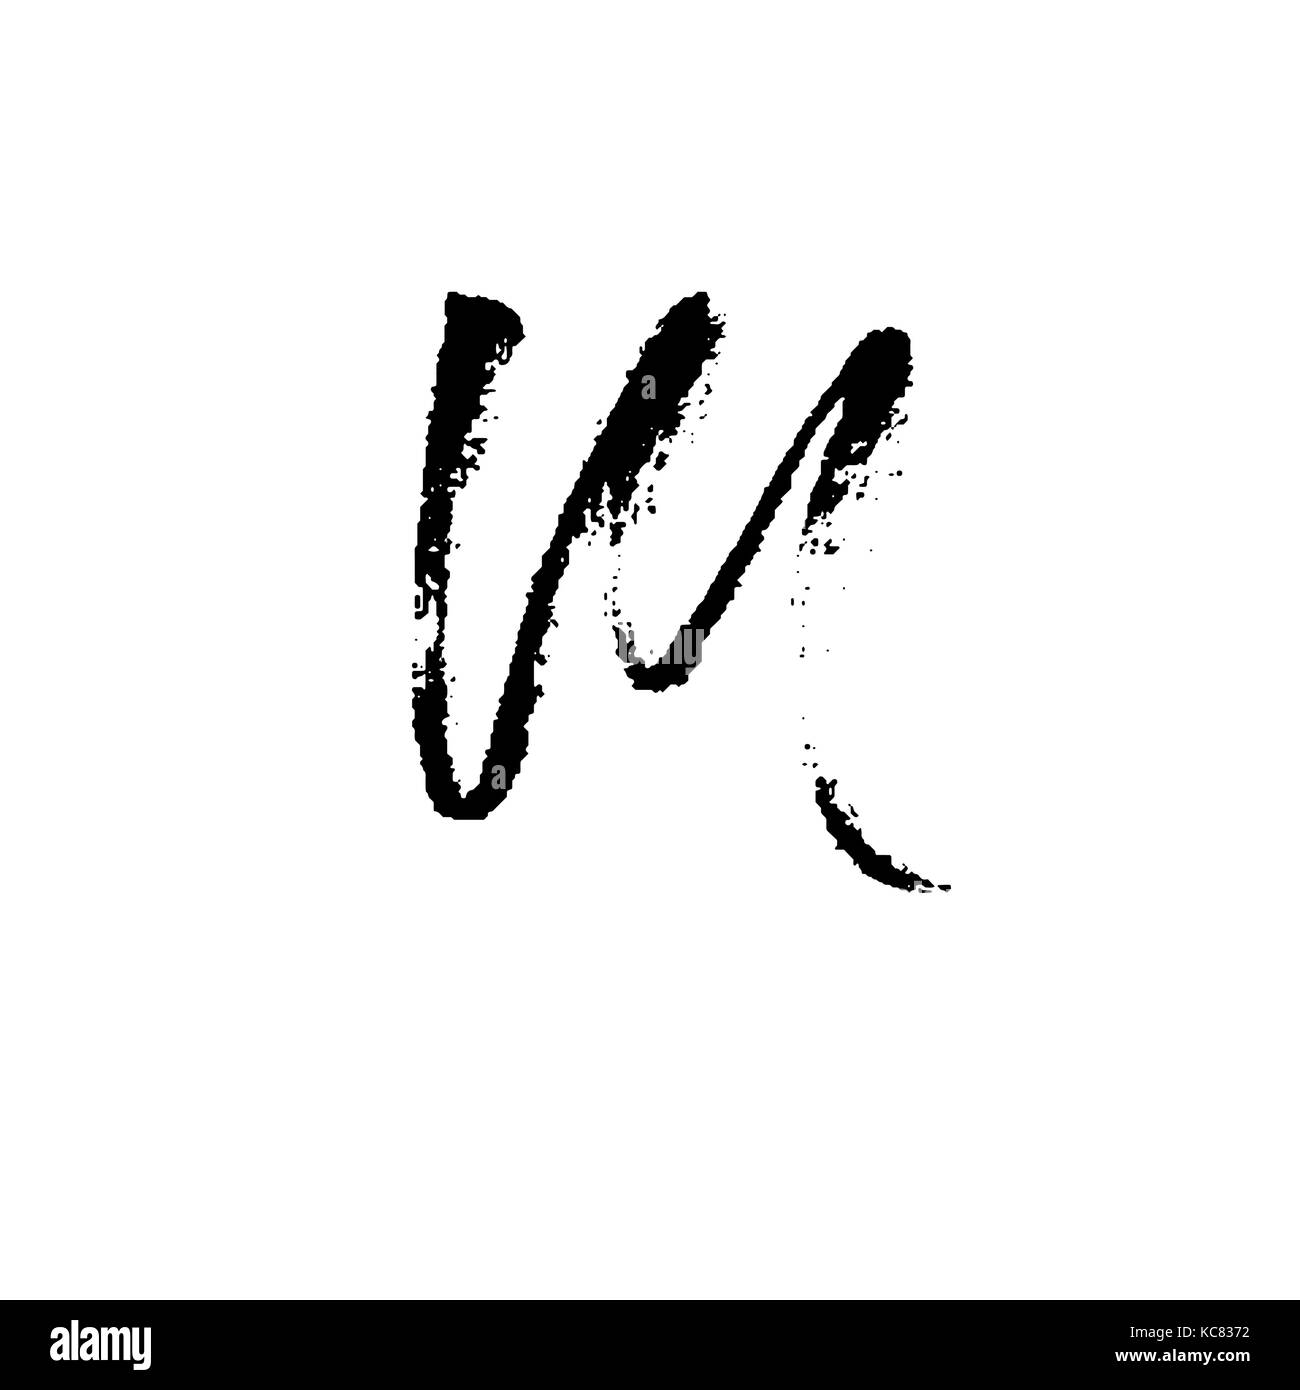 Letter M Handwritten By Dry Brush Rough Strokes Font Vector Illustration Grunge Style Elegant Alphabet